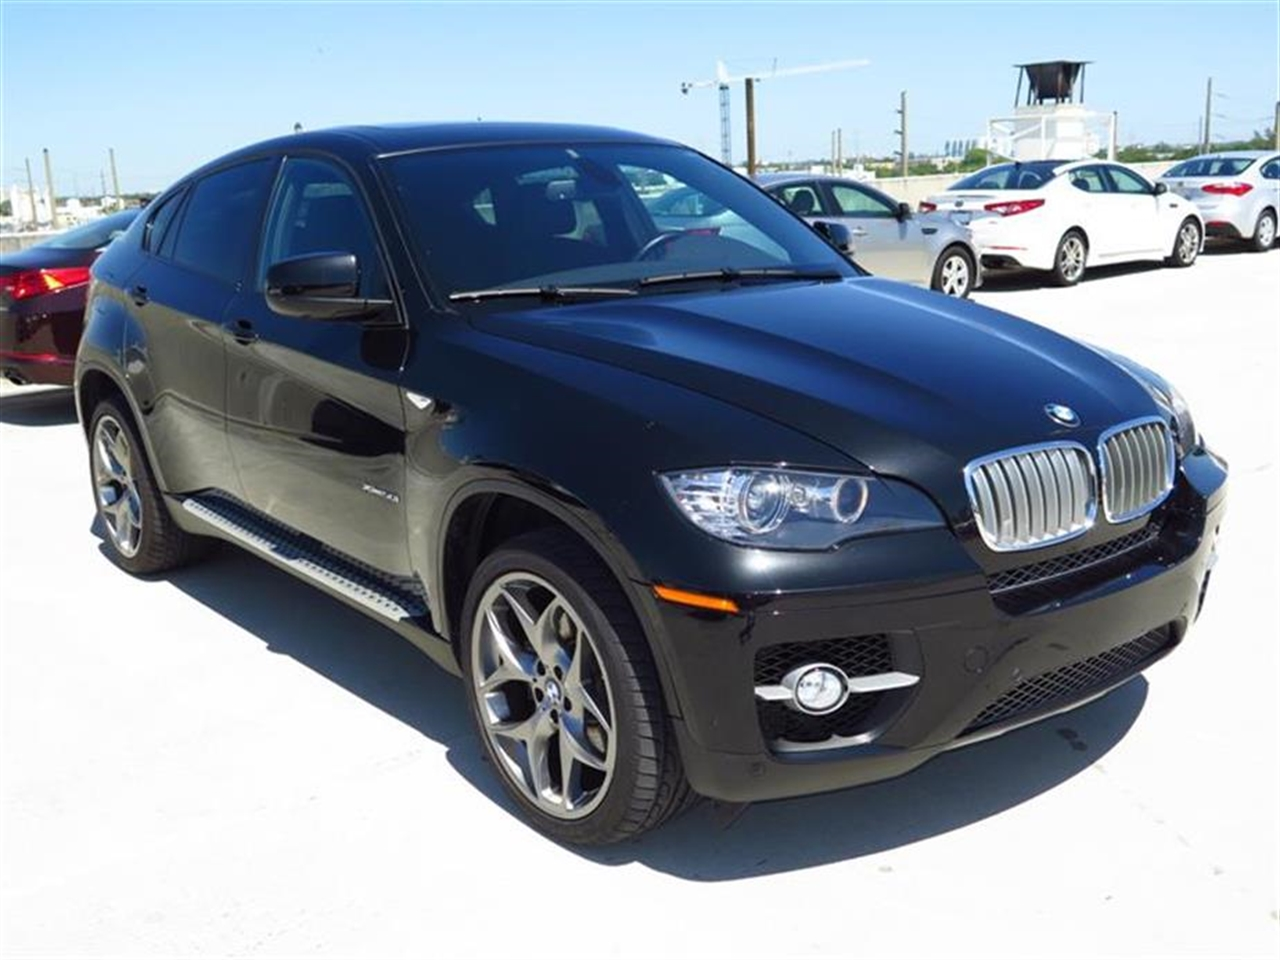 2012 BMW X6 AWD 4dr 50i 38527 miles 20-way pwr multi-contour front bucket seats include standard